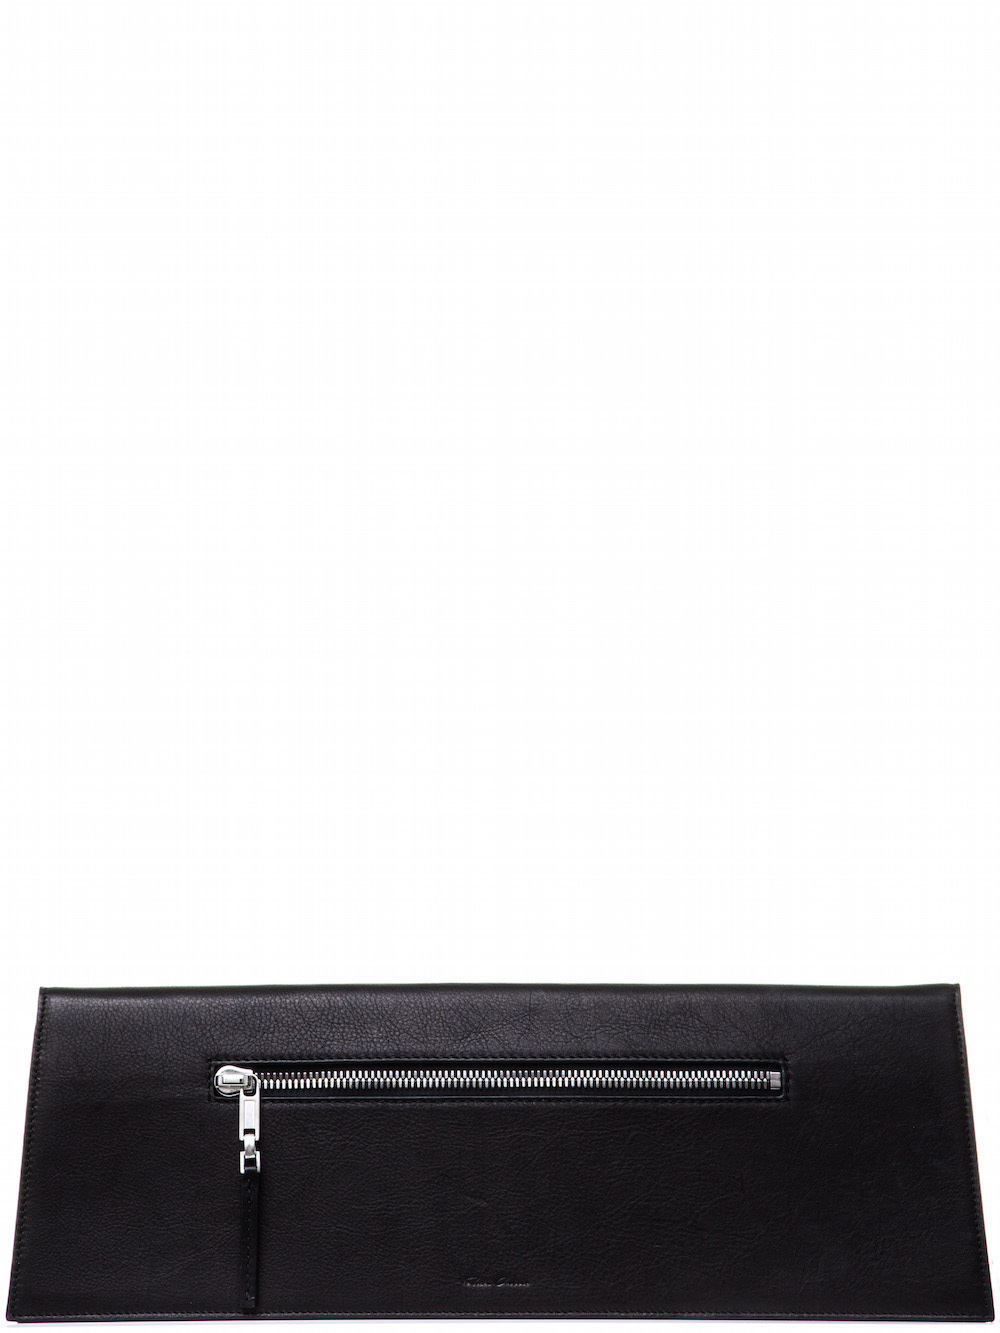 RICK OWENS MIDI CLUTCH IN BLACK CALF LEATHER